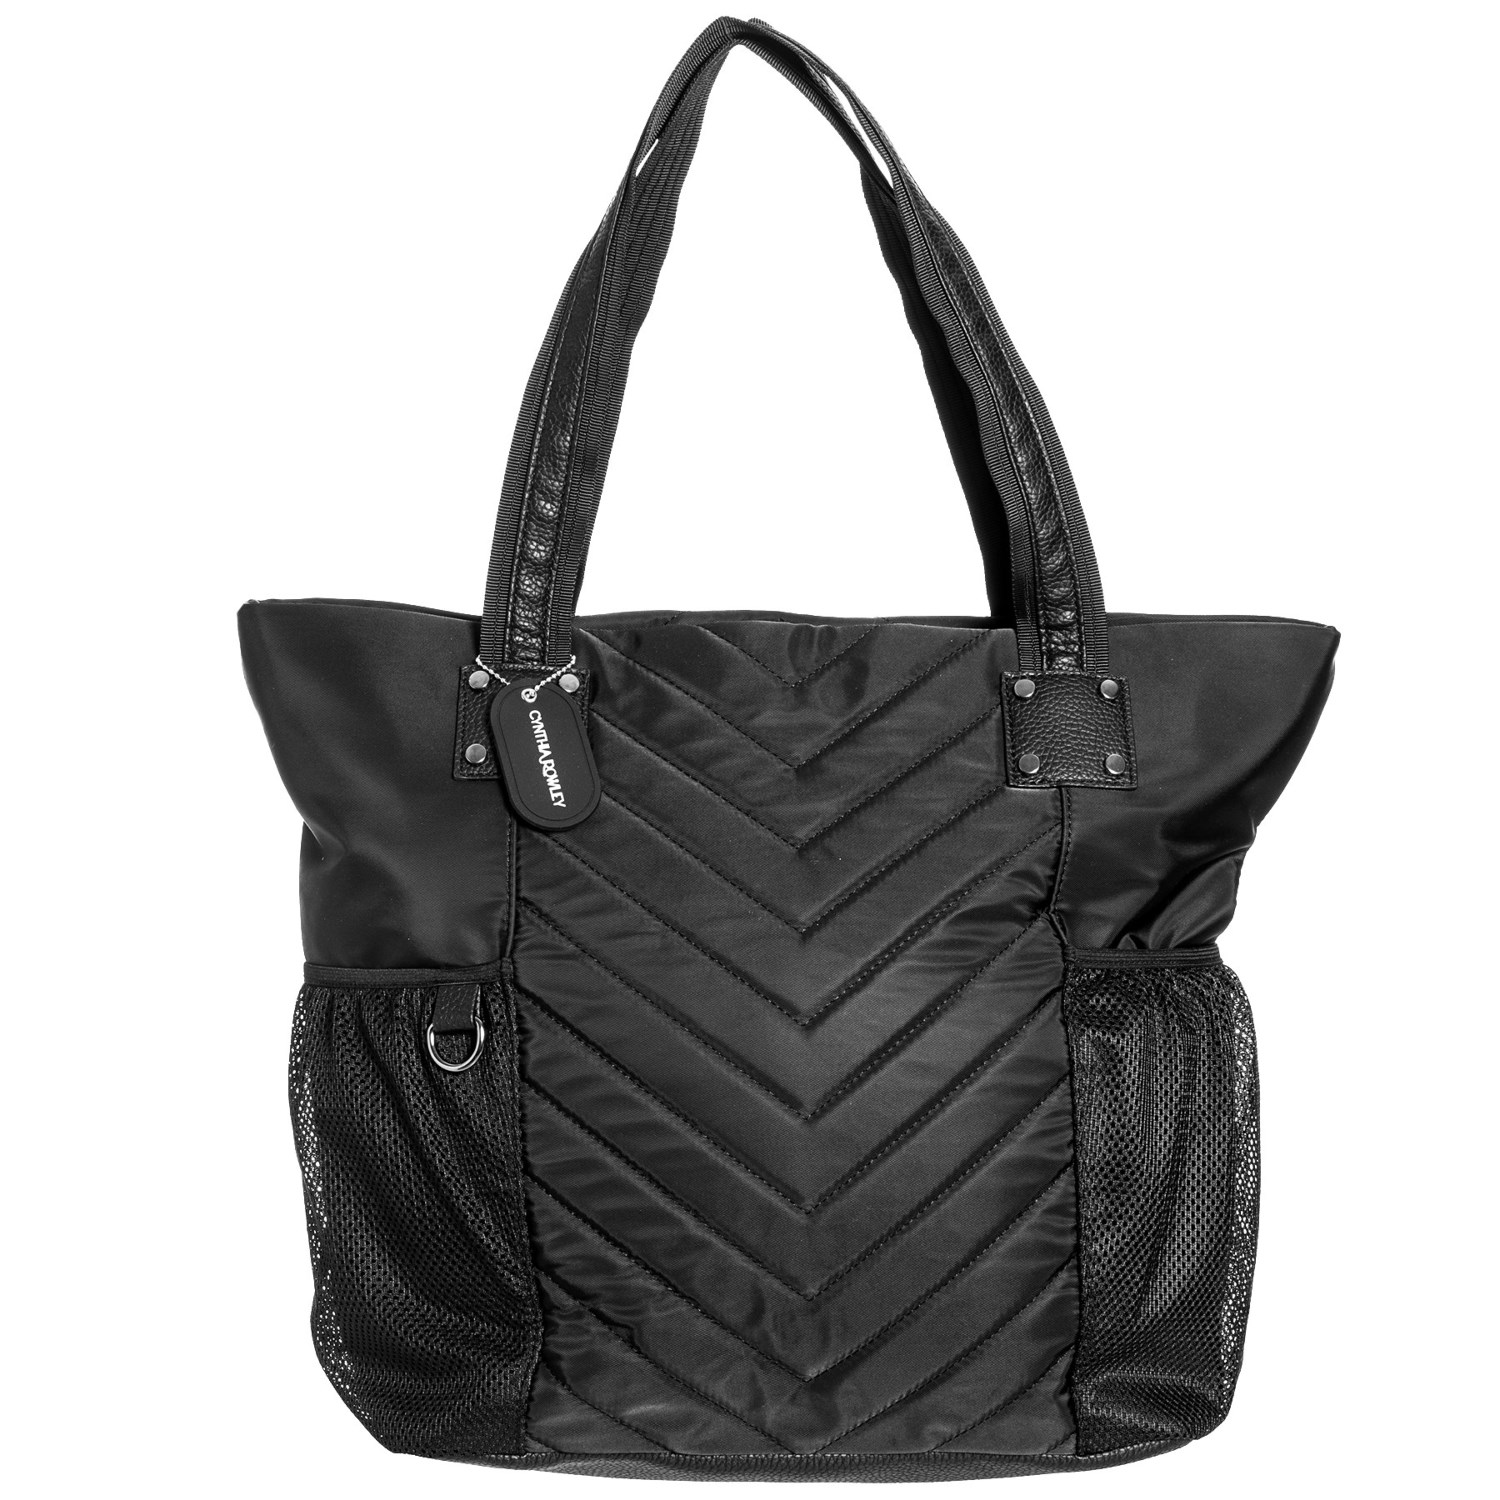 220684d8a58 Cynthia Rowley Quilted Nylon Tote Bag (For Women) - Save 65%